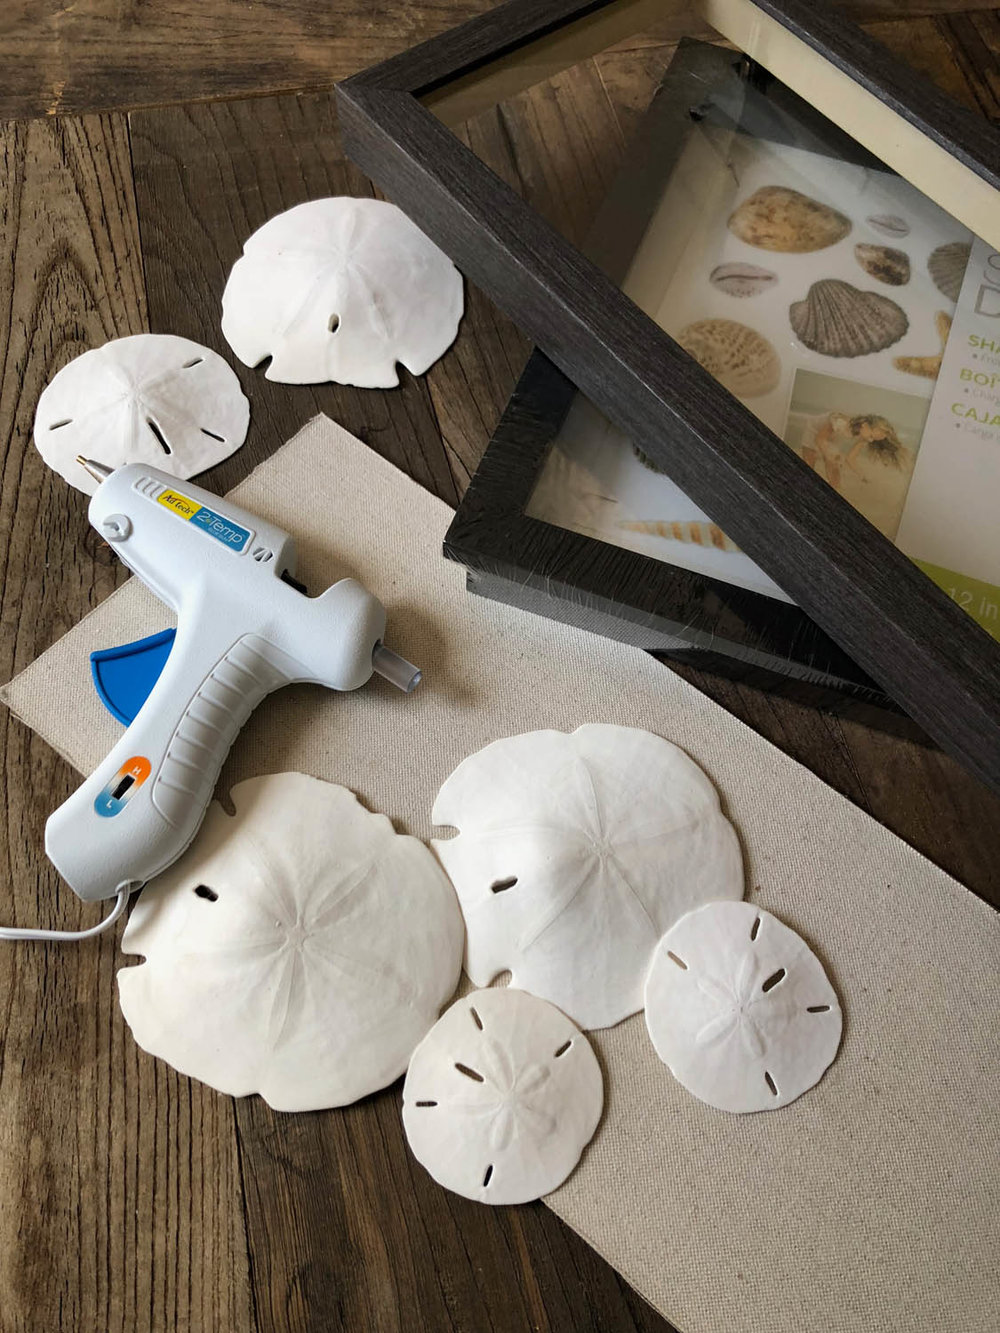 Supplies for shadow box display ideas featuring sand dollar memory collection